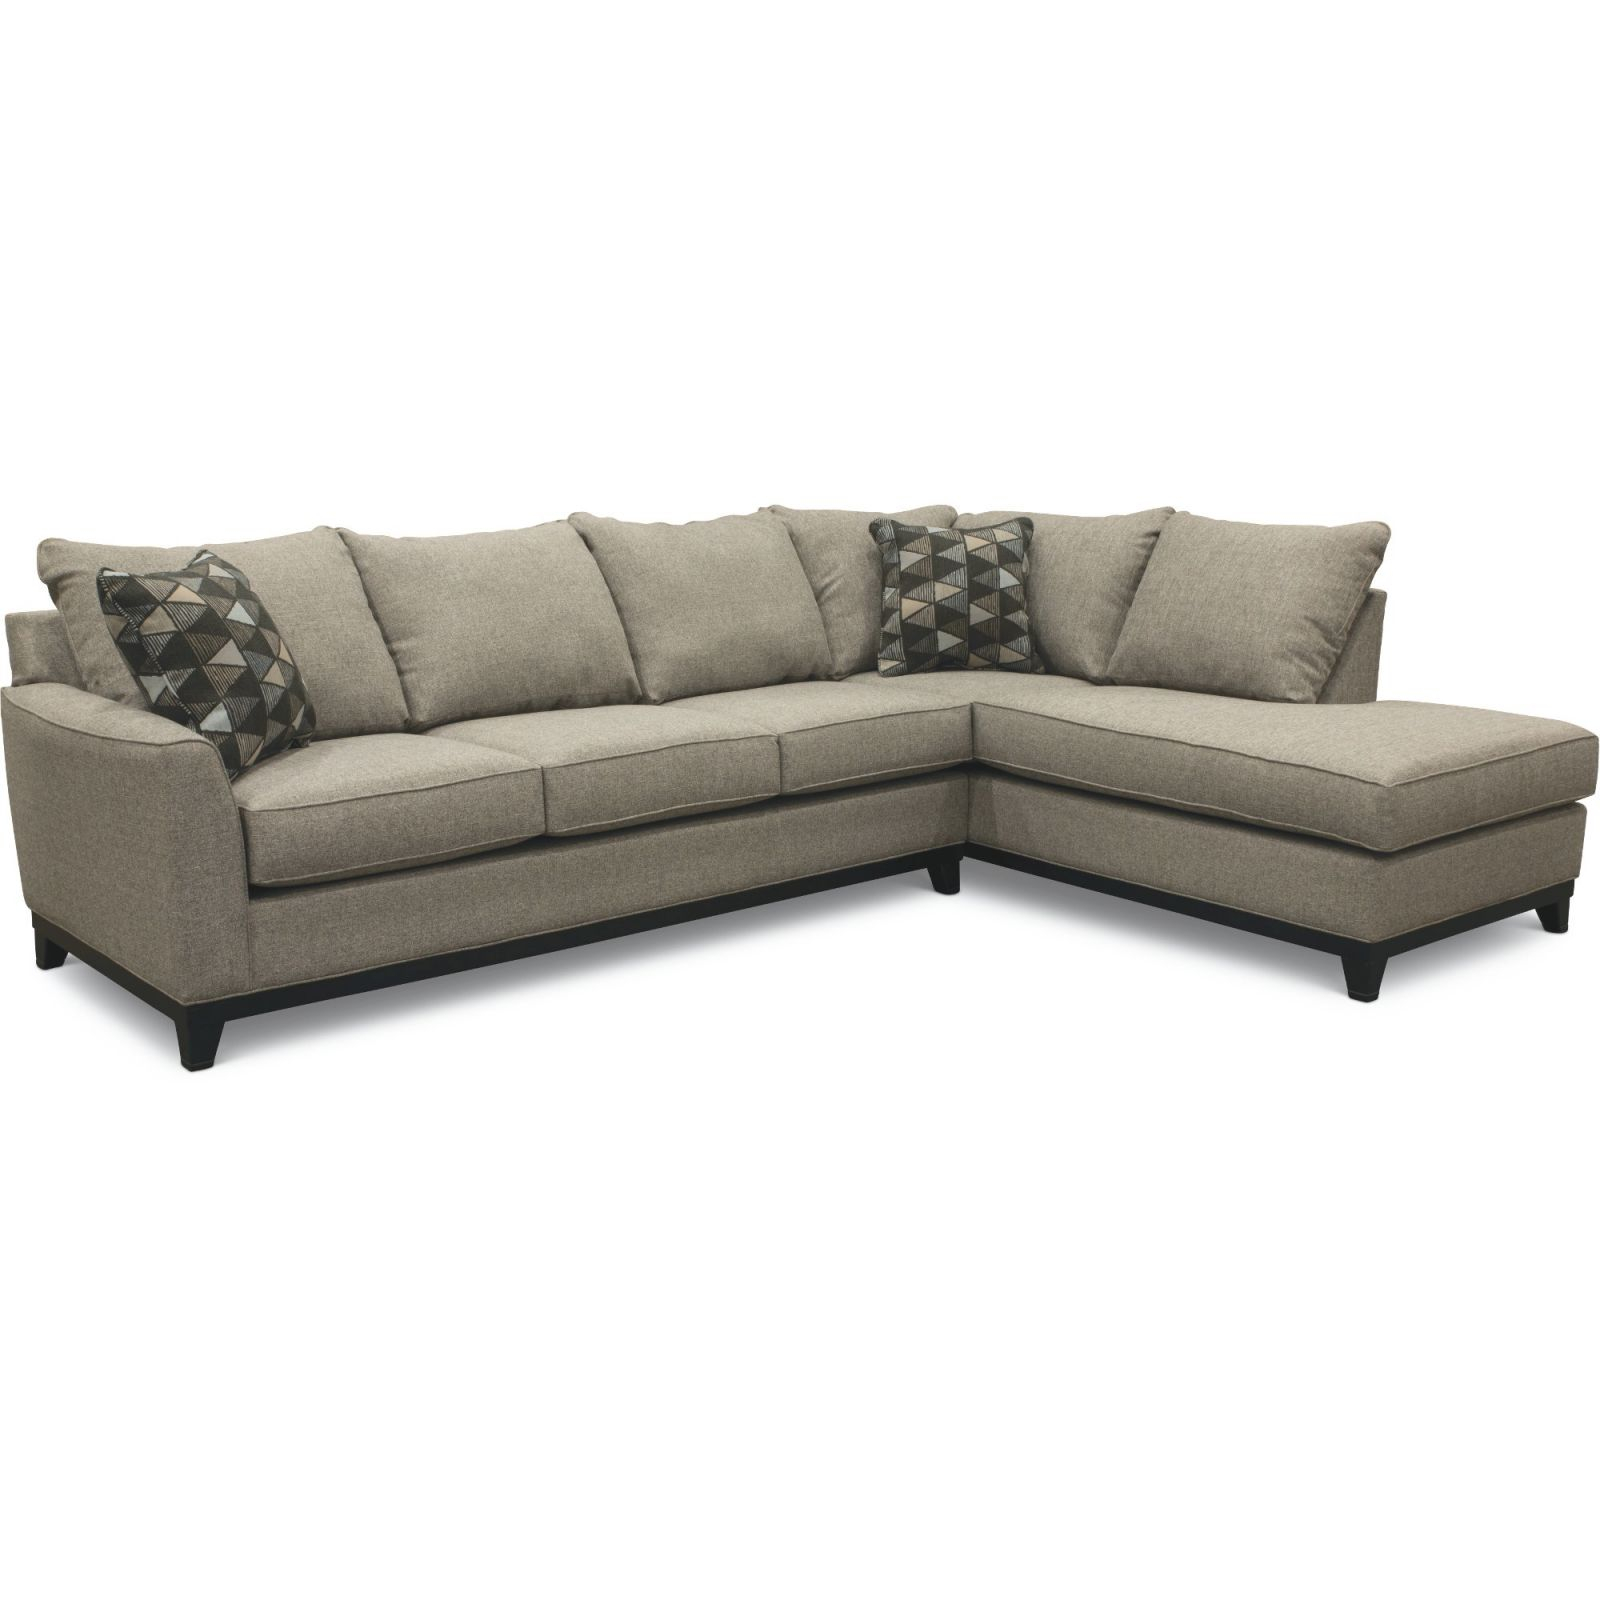 Slate Gray 2 Piece Sectional Sofa With Raf Chaise – Emerson for Elegant 2 Piece Sectional With Chaise